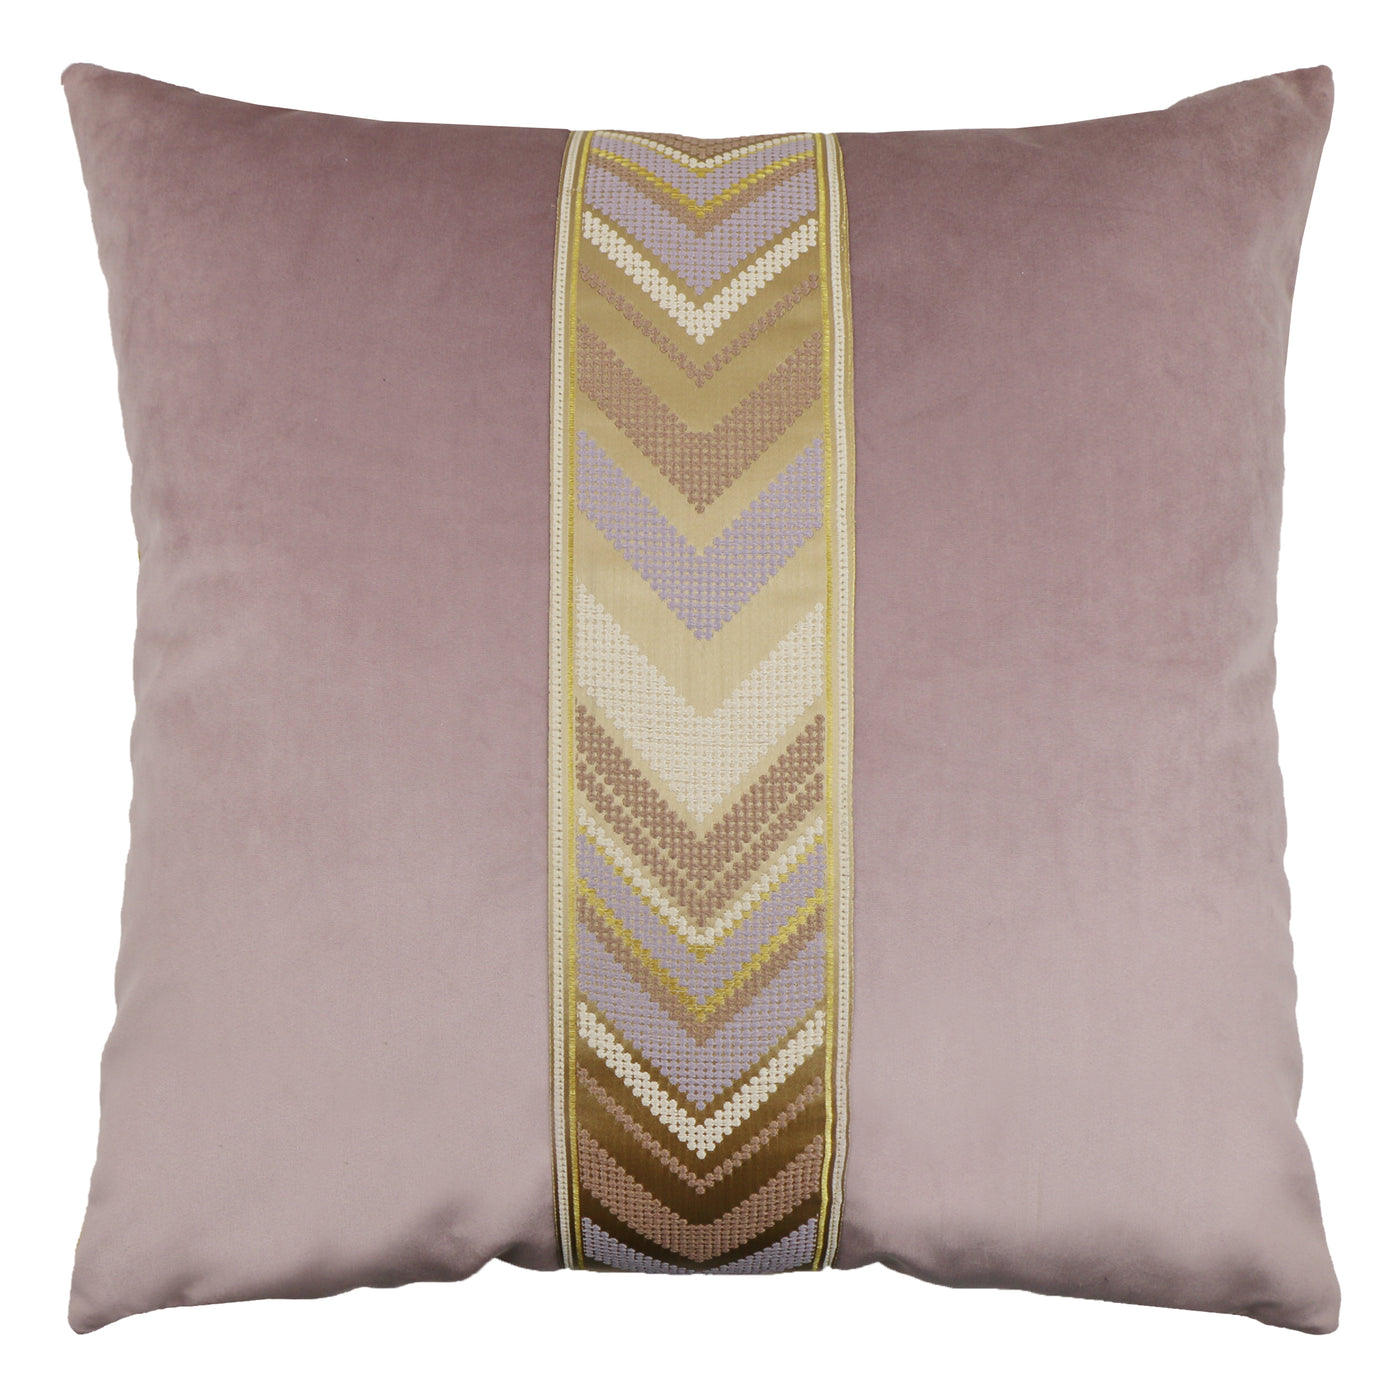 Addison Pillow - Orchid/Brass PT-102